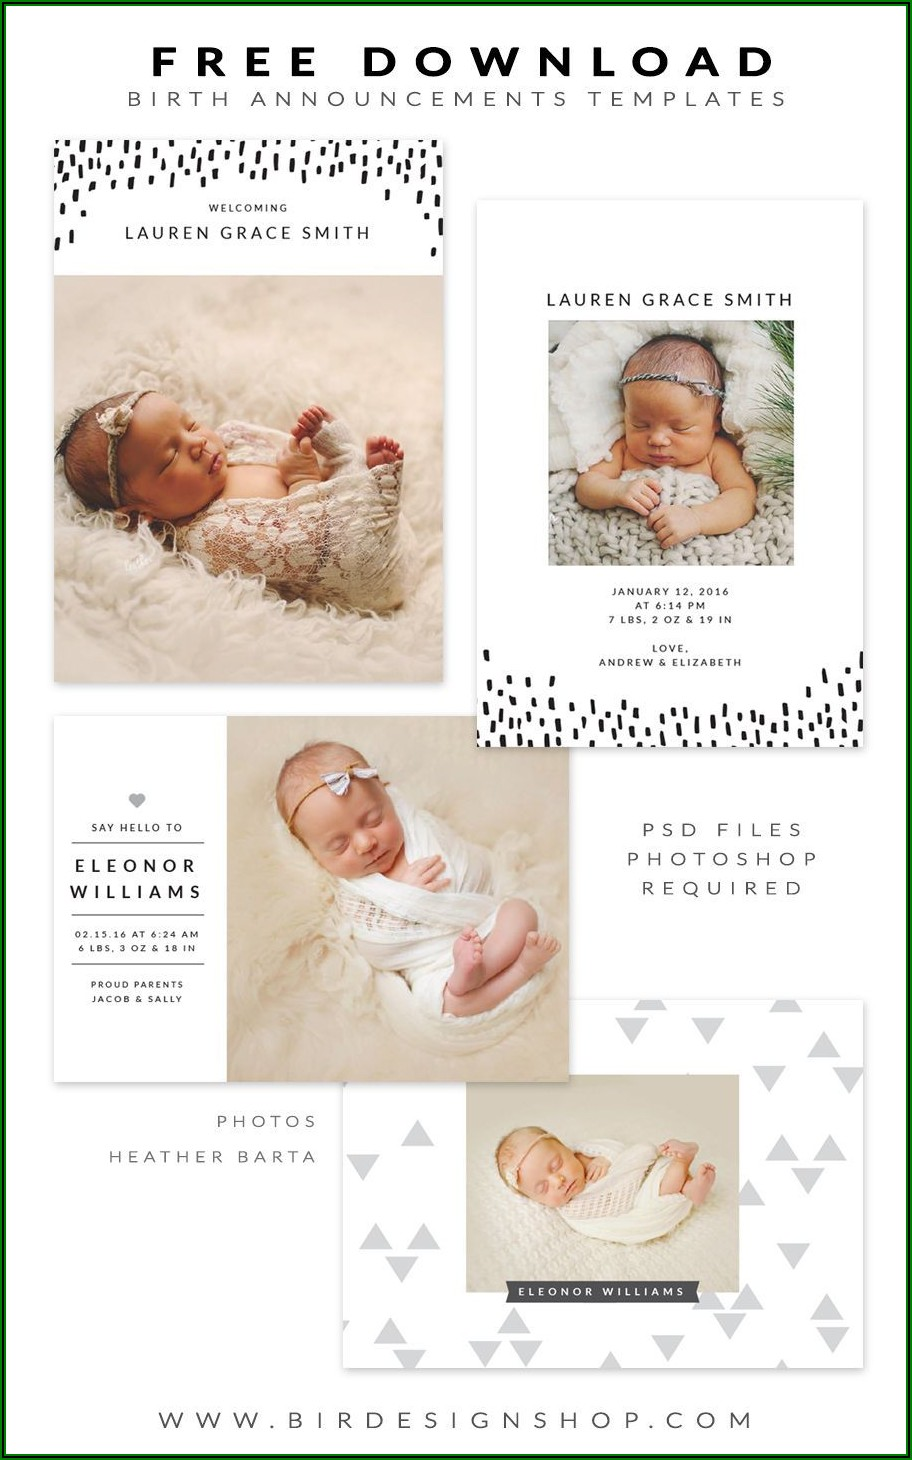 Pregnancy Announcement Template Free Online